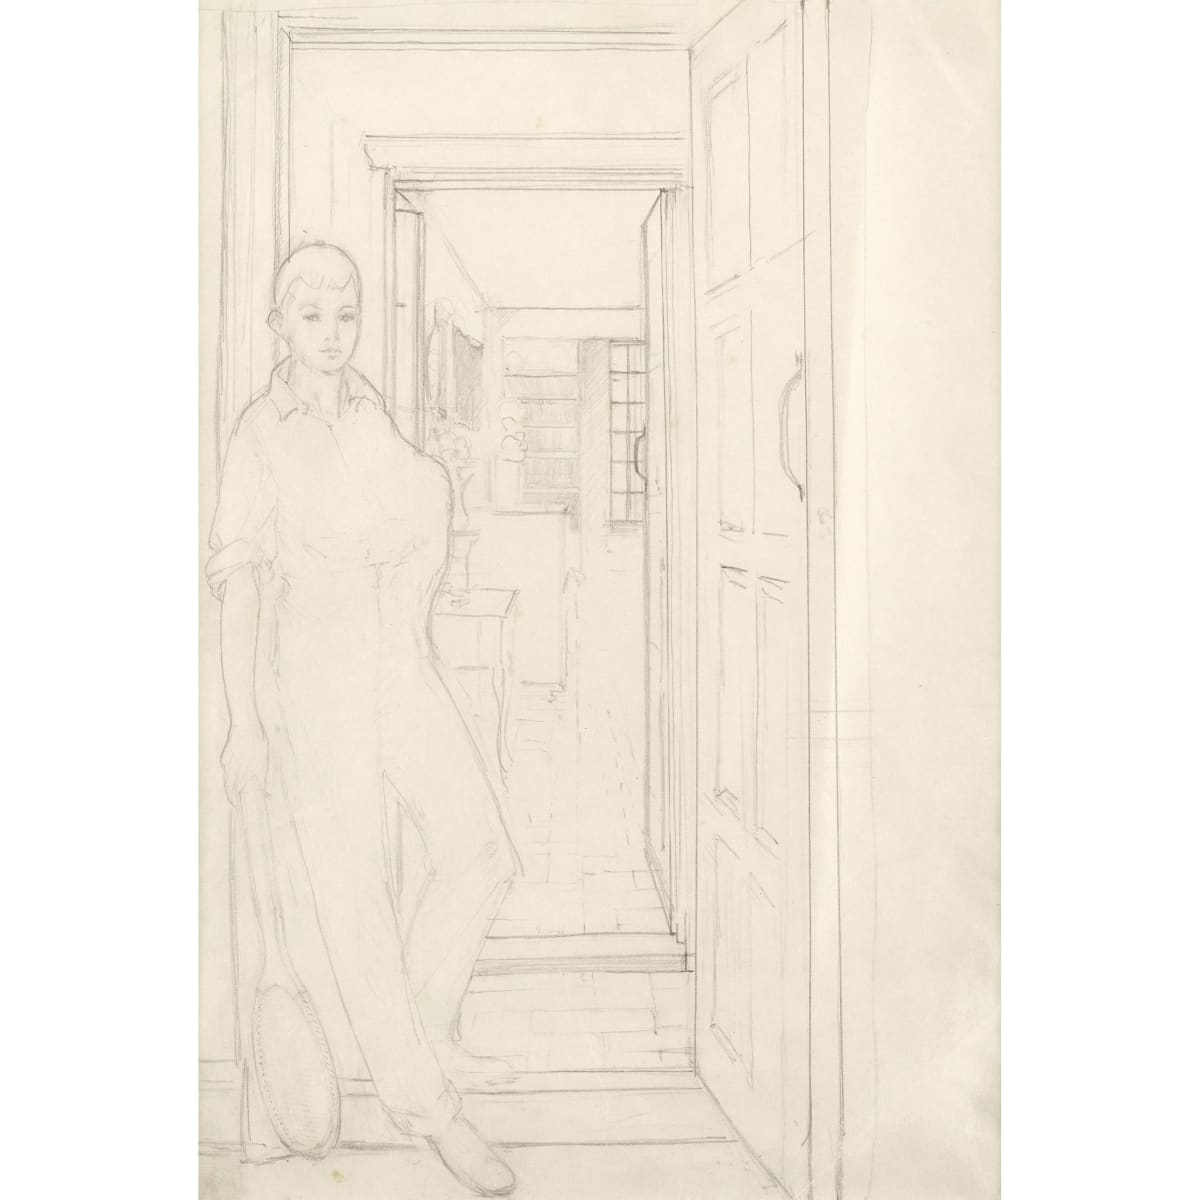 Sir William Oliphant Hutchison Interior at Blyth Hill with HP Hutchison pencil 14 x 10 inches